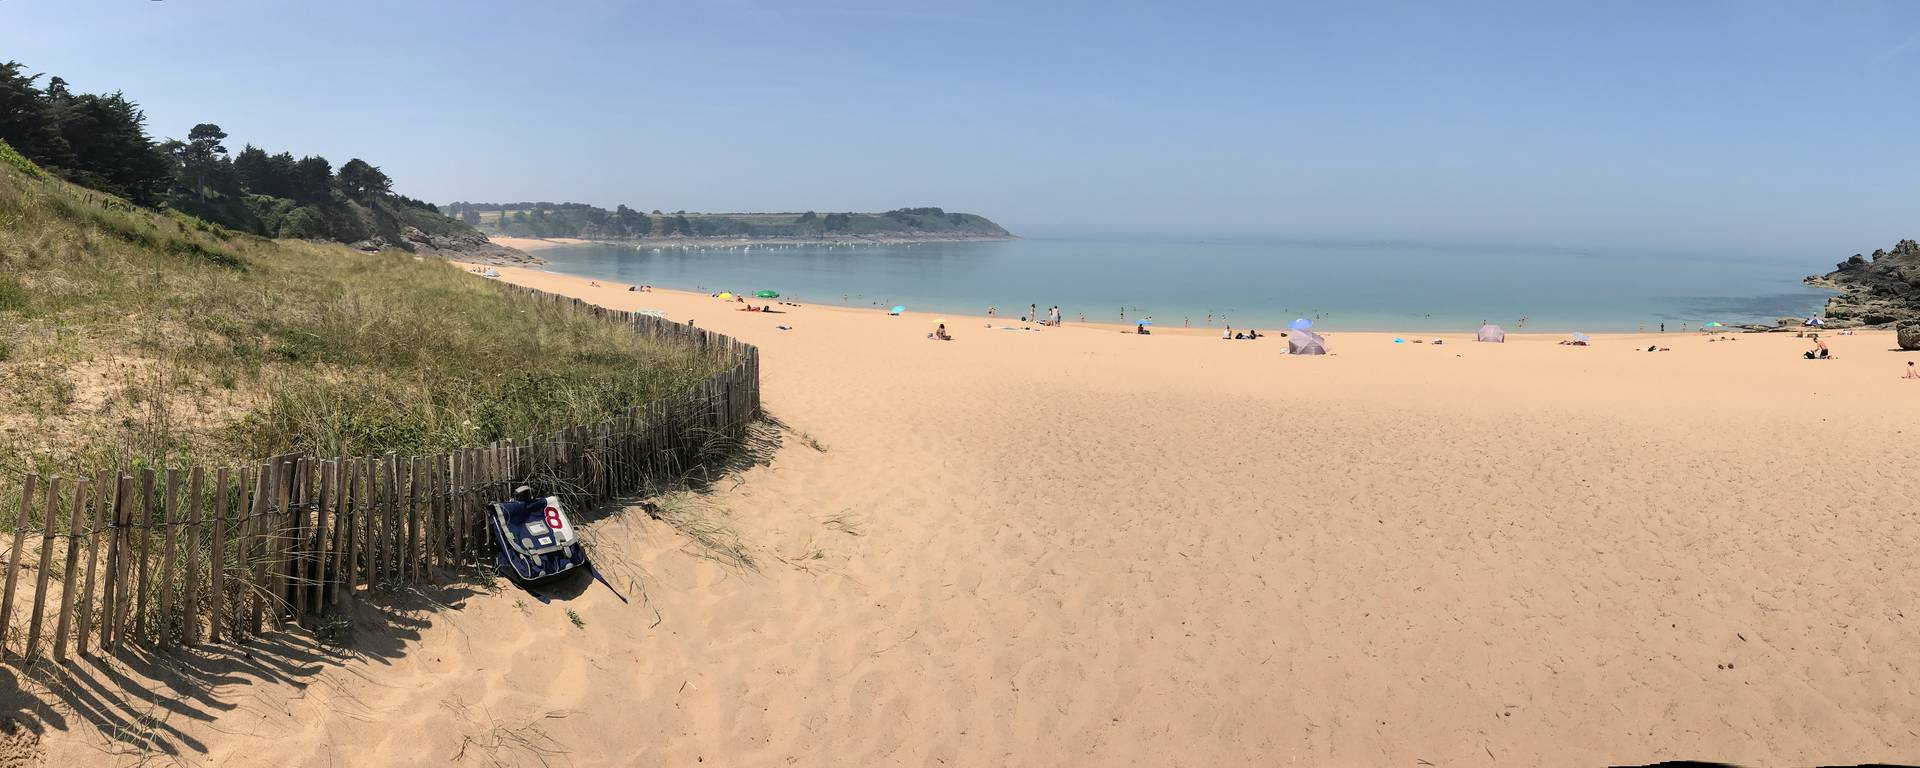 Plage de la Touesse in Saint-Coulomb